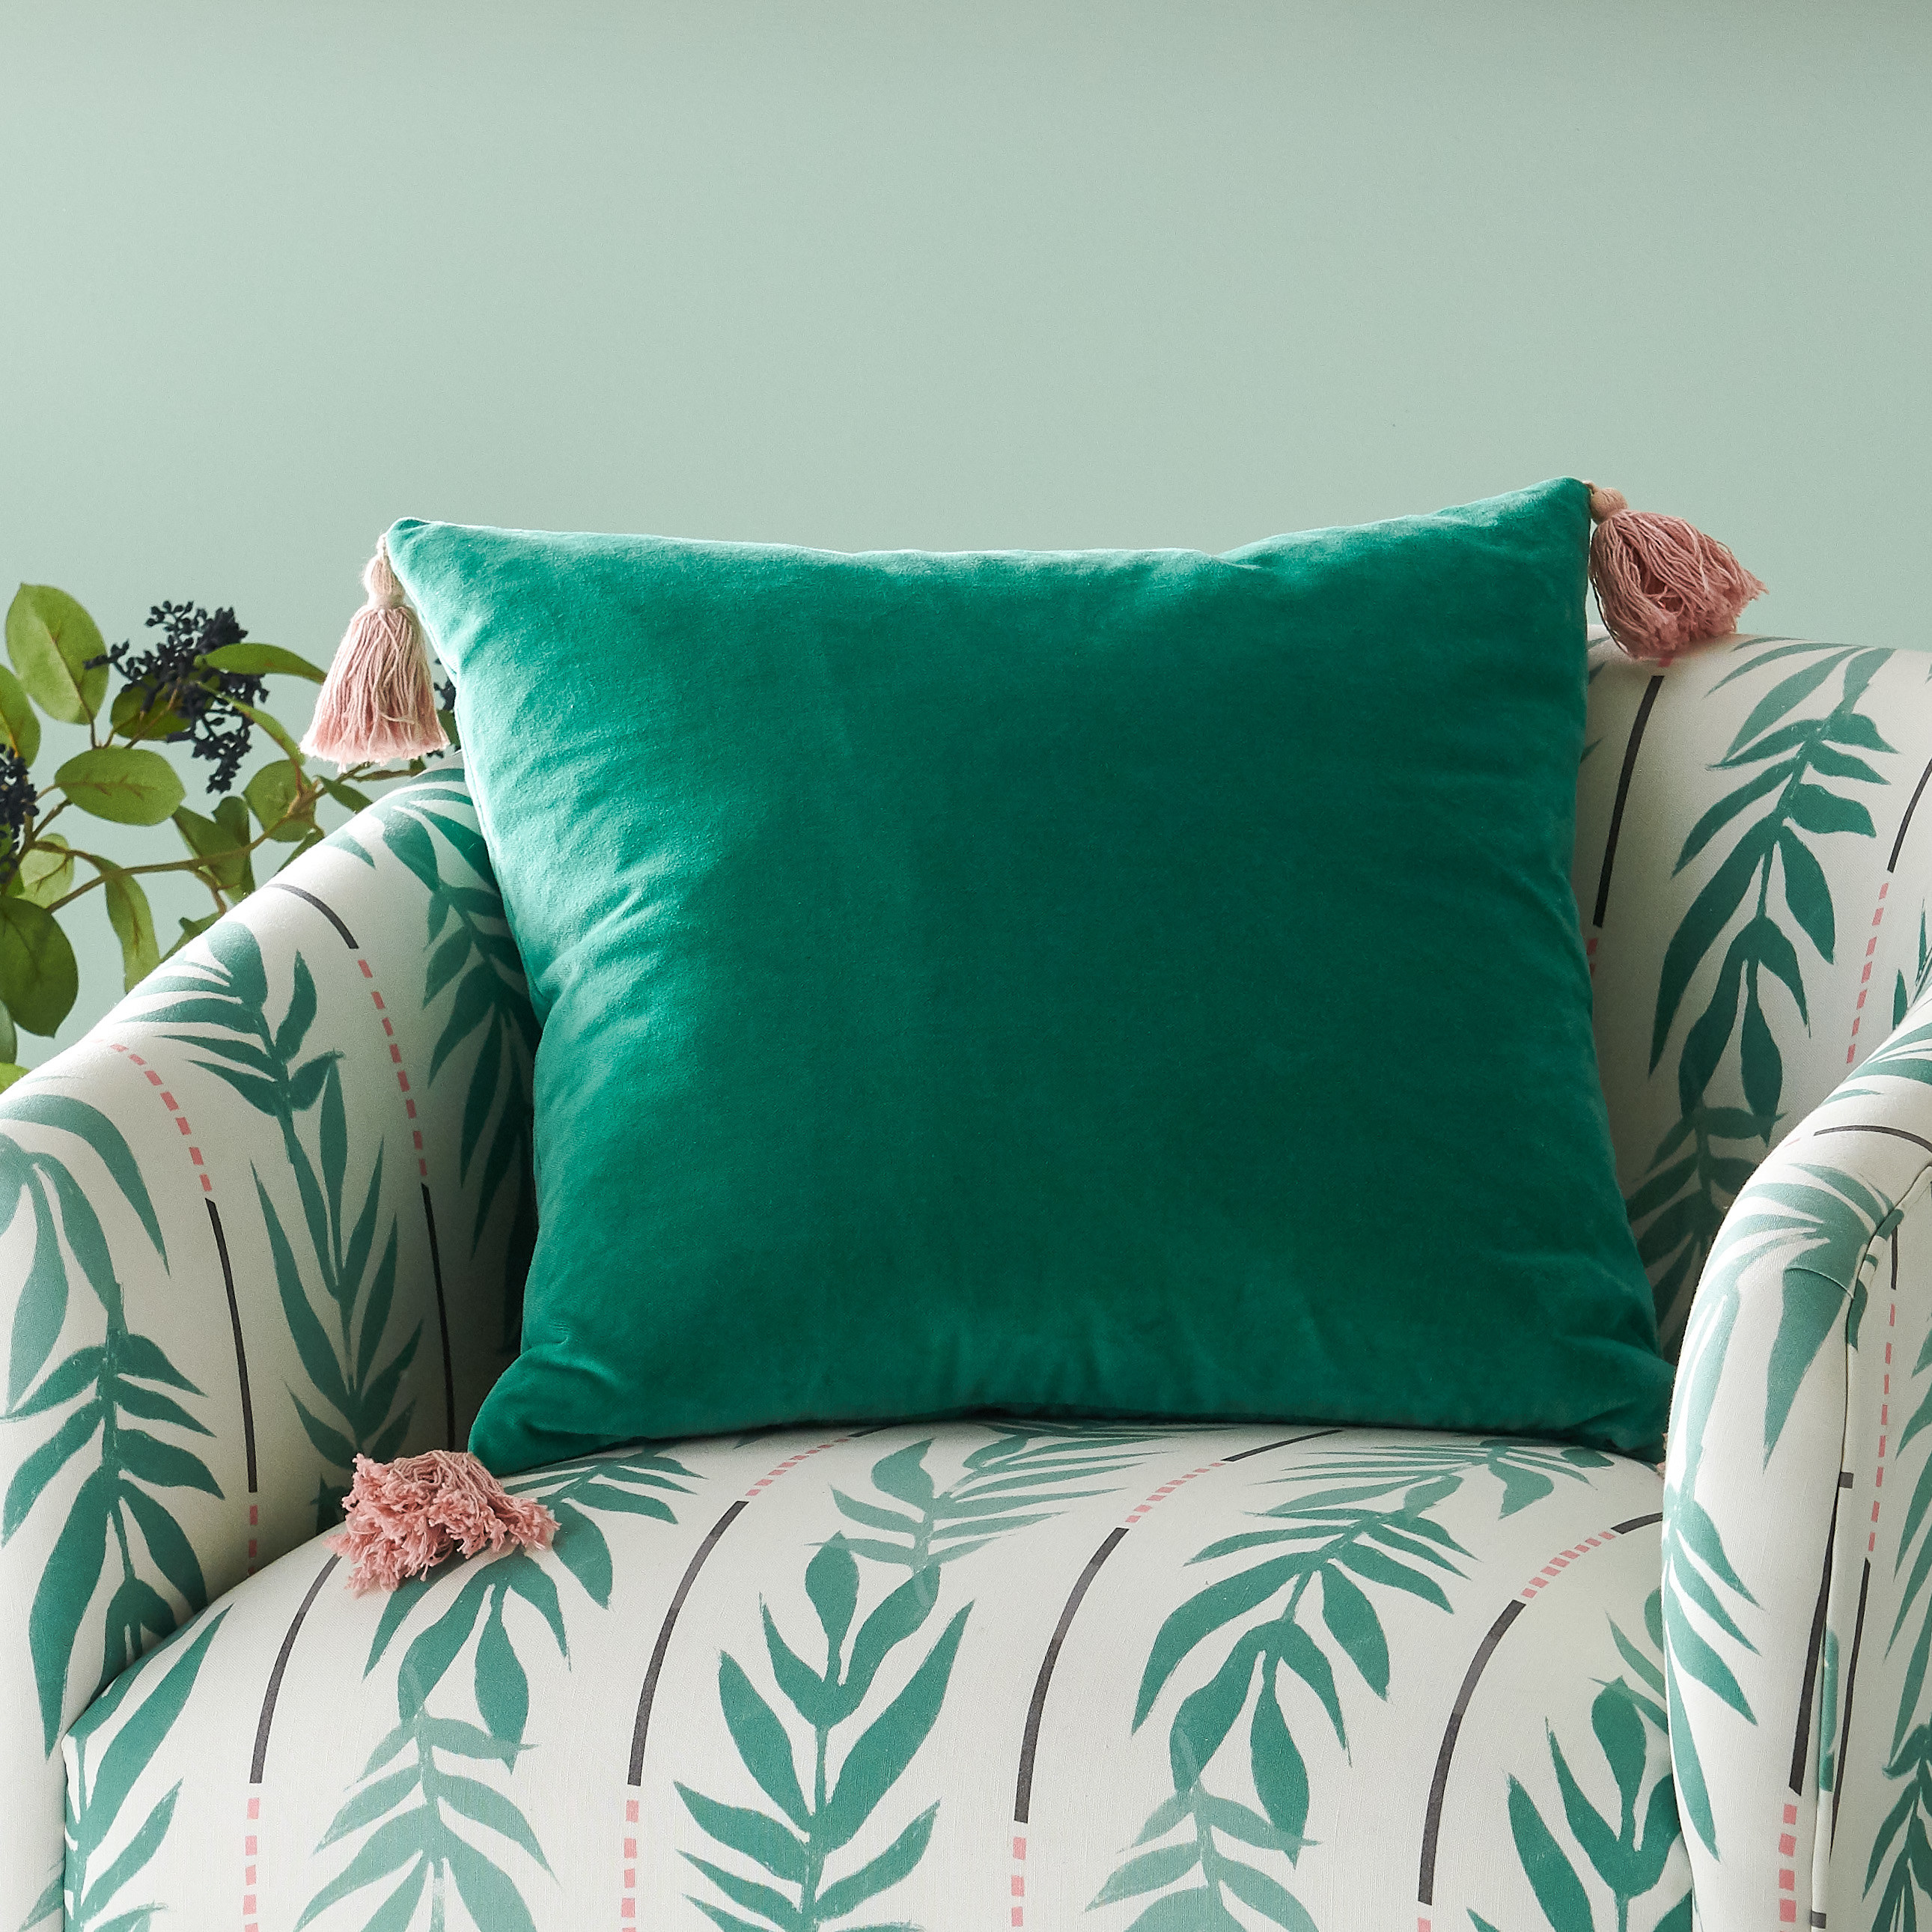 The throw pillow in teal on an accent chair